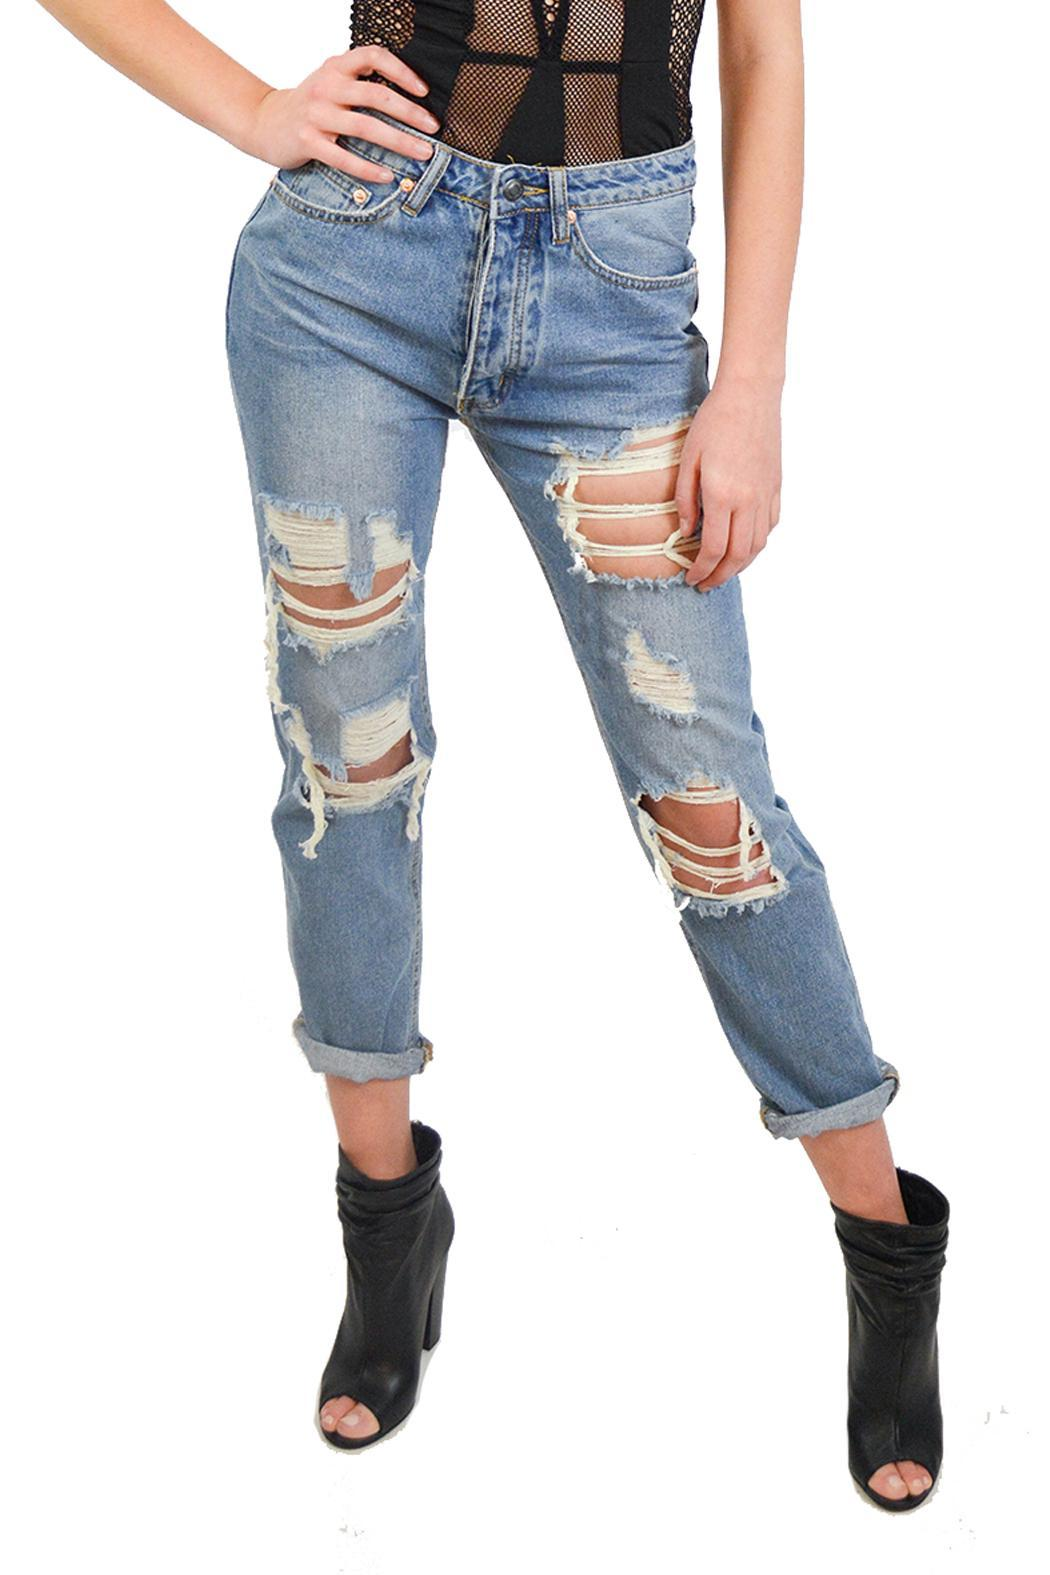 Alana Ferr Atelier Ripped Up Jeans from Philadelphia — Shoptiques